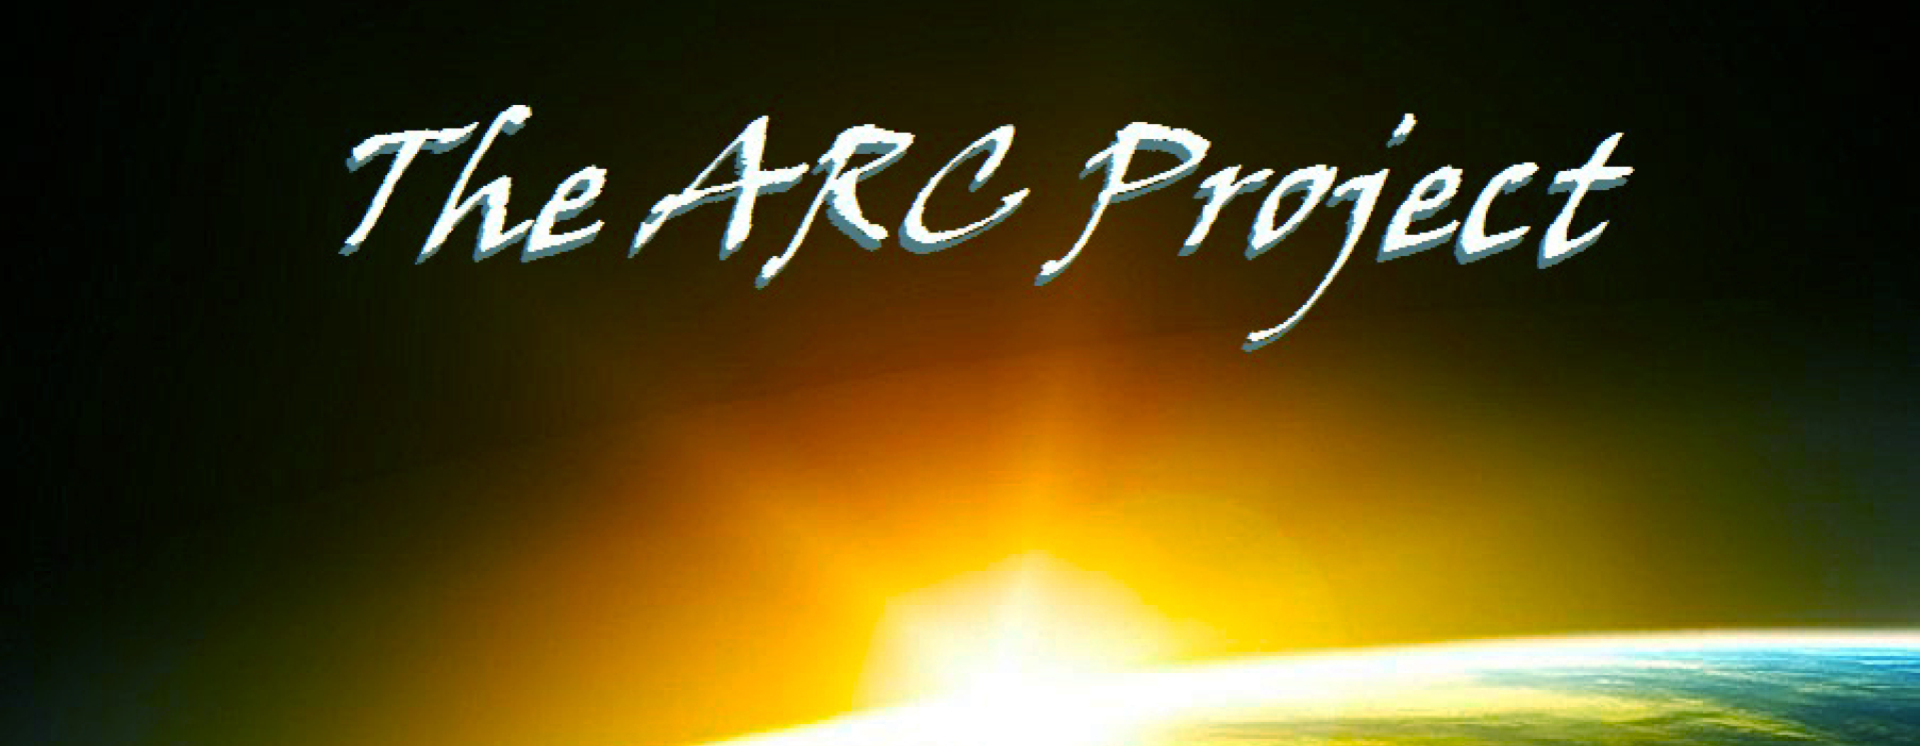 1418988356 the arc project the journey 3 cd cover art copy